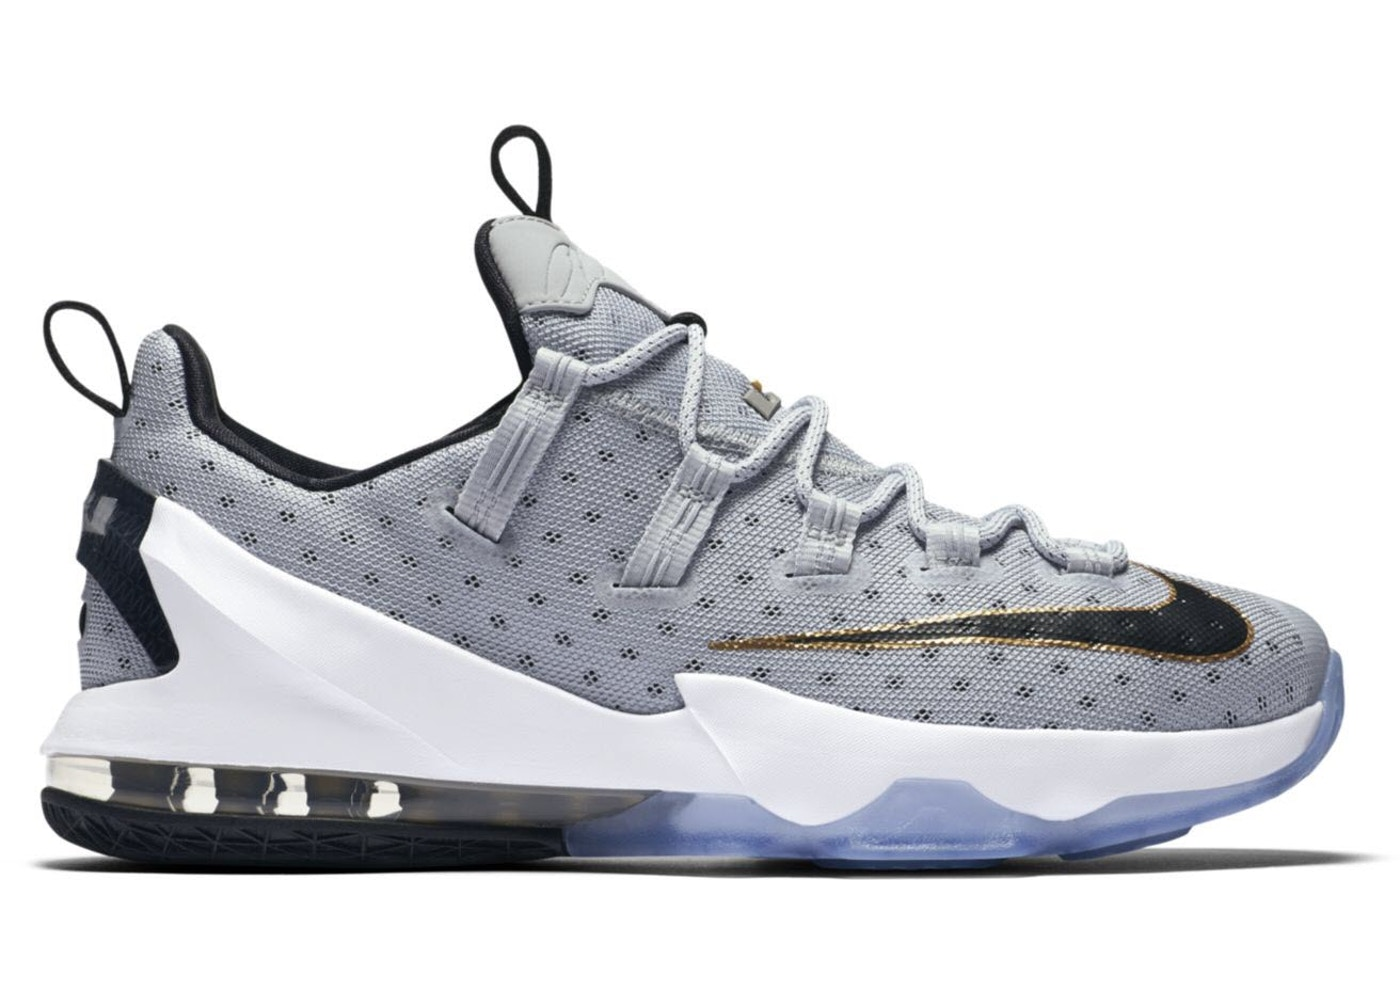 on sale d3fae 78e86 LeBron 13 Low Cool Grey - 831925-071